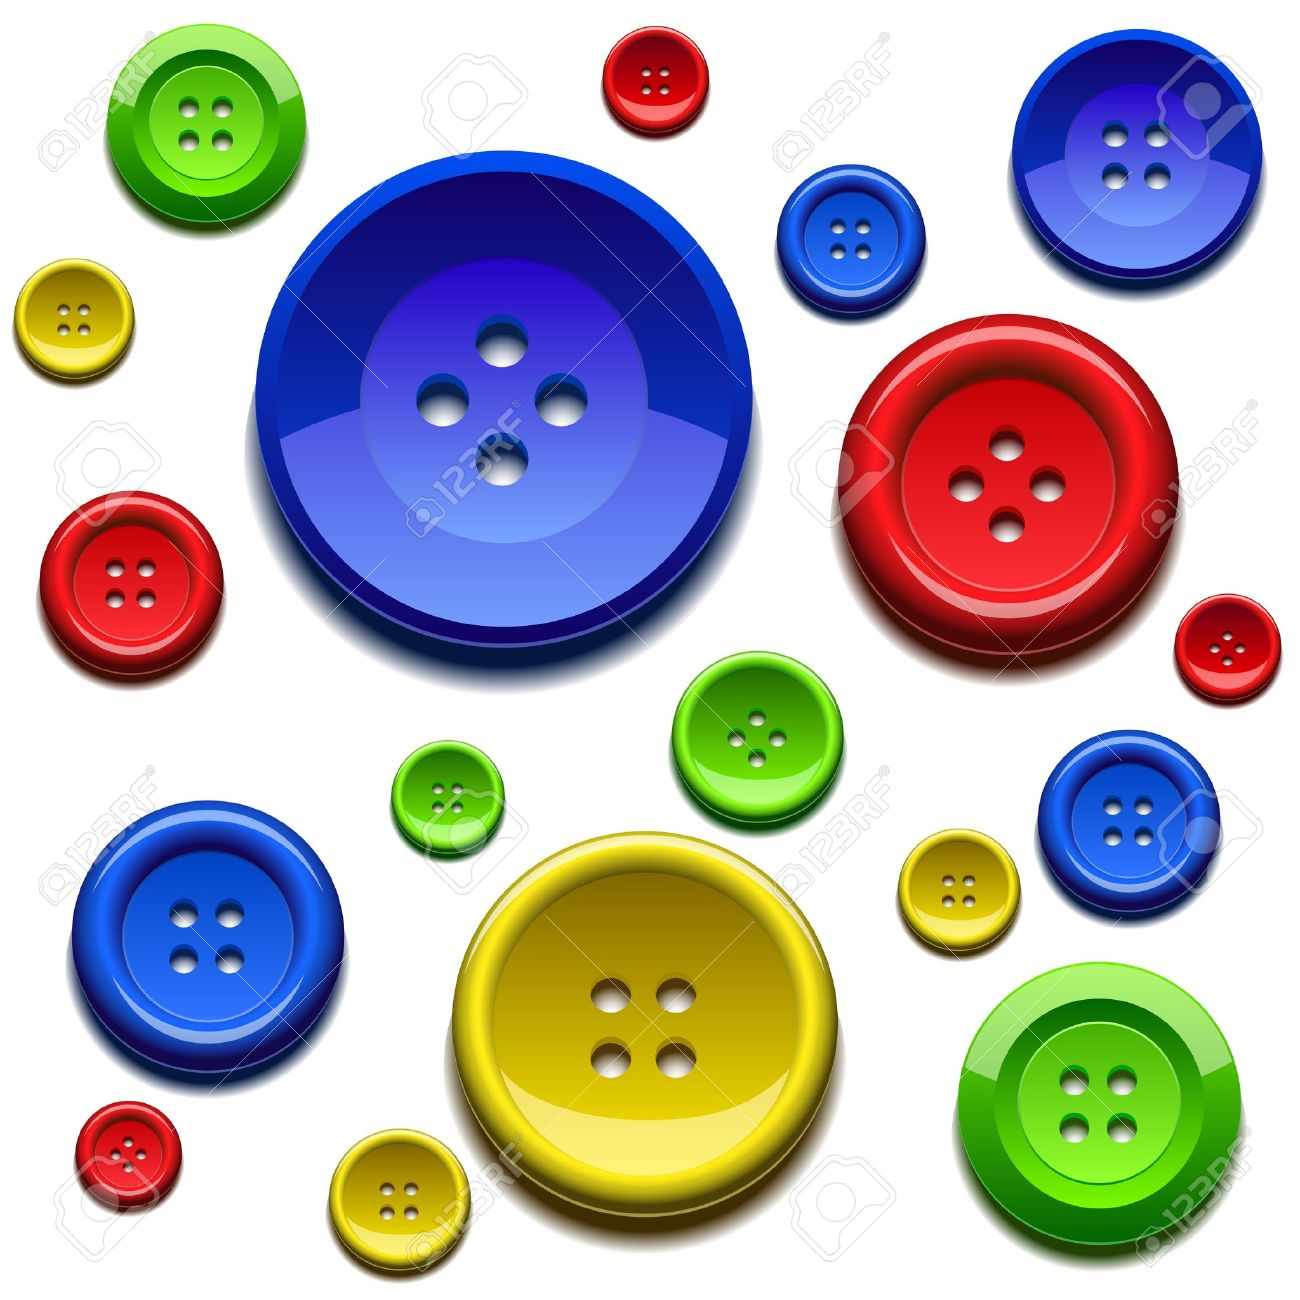 663 Buttons free clipart.